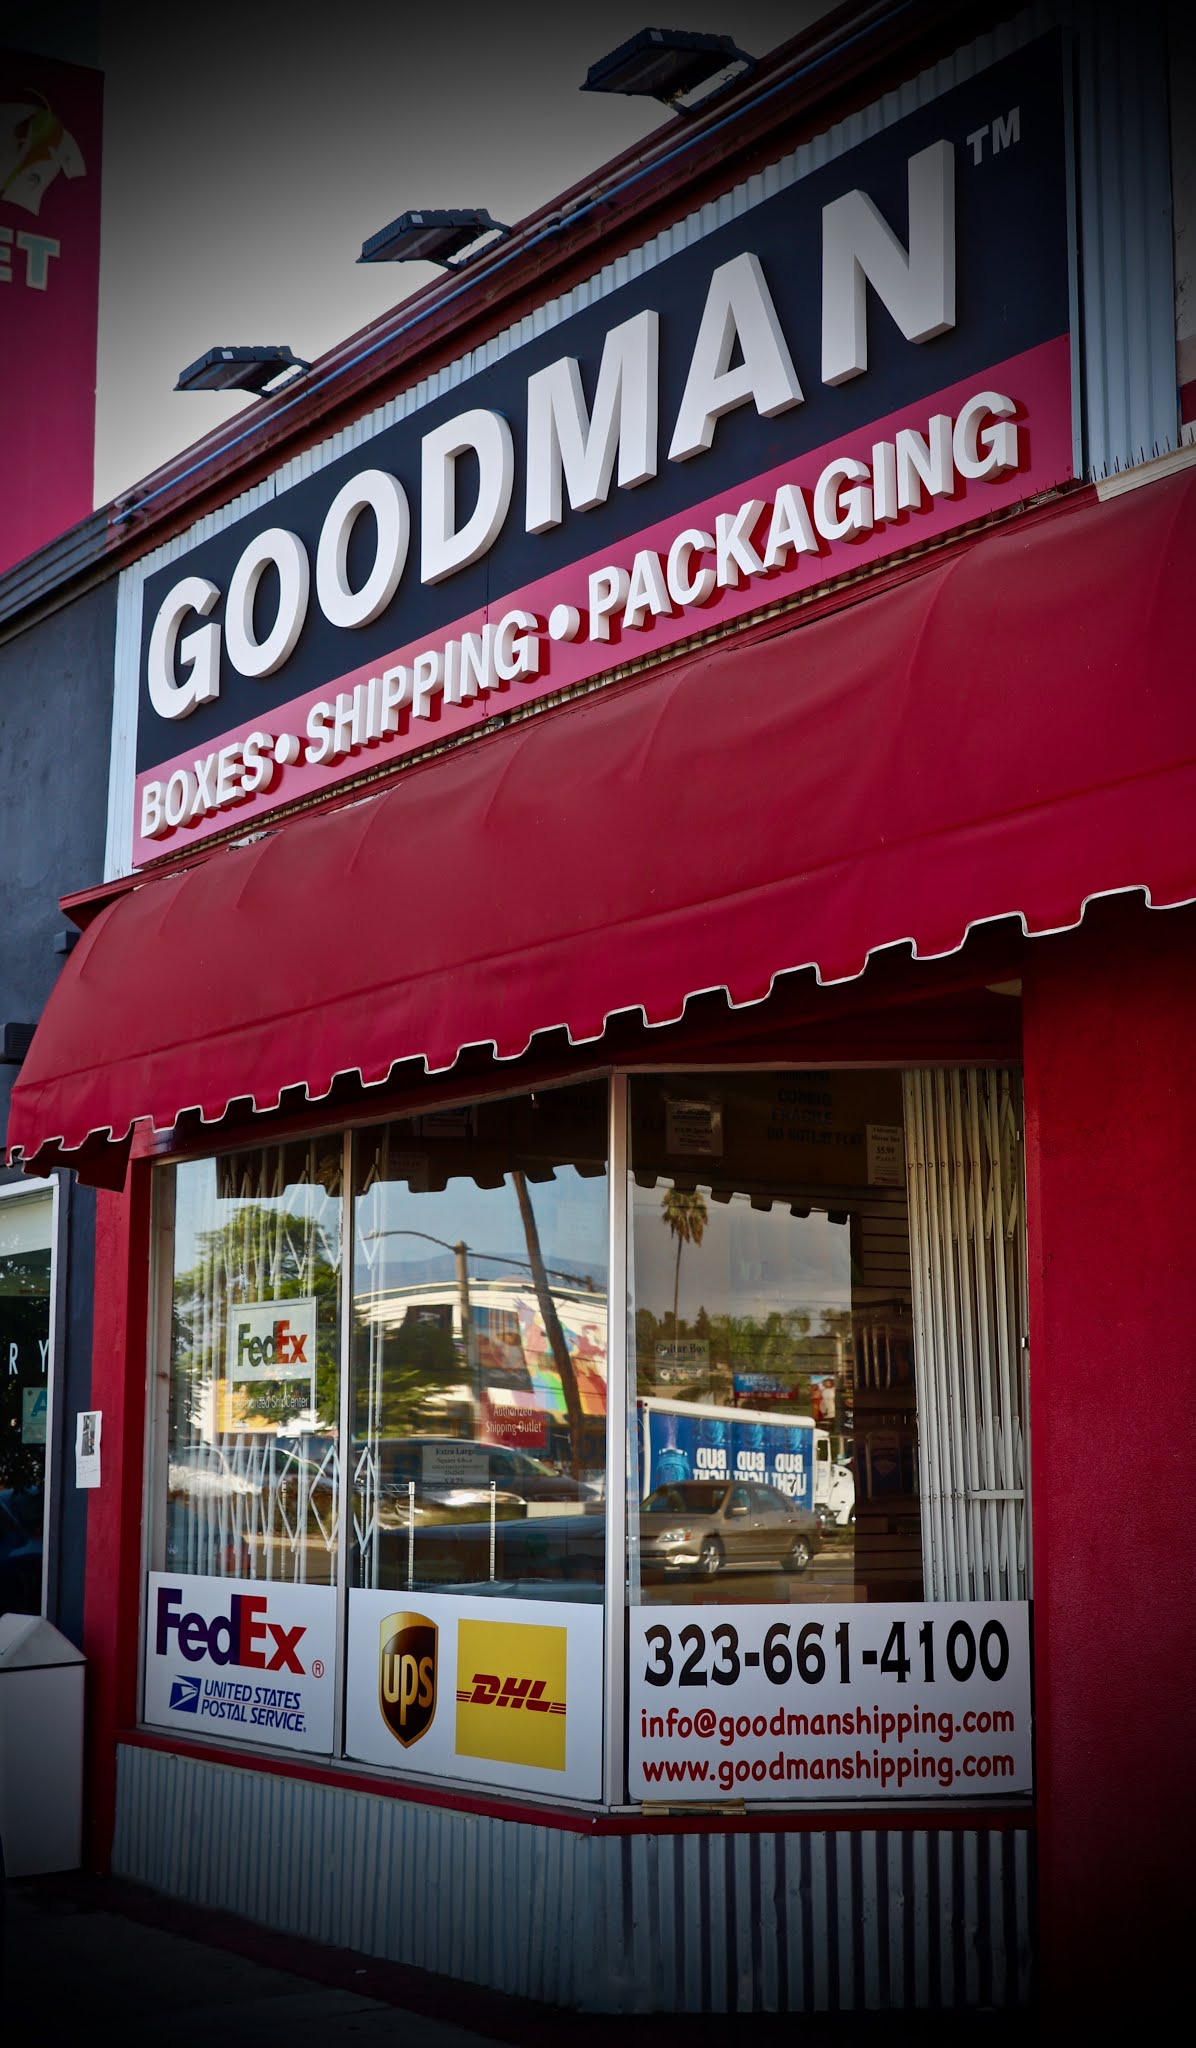 Goodman Packing & Shipping-Atwater: UPS shipping store, packing, crating, moving and shipping supplies serving Atwater Village and Glendale